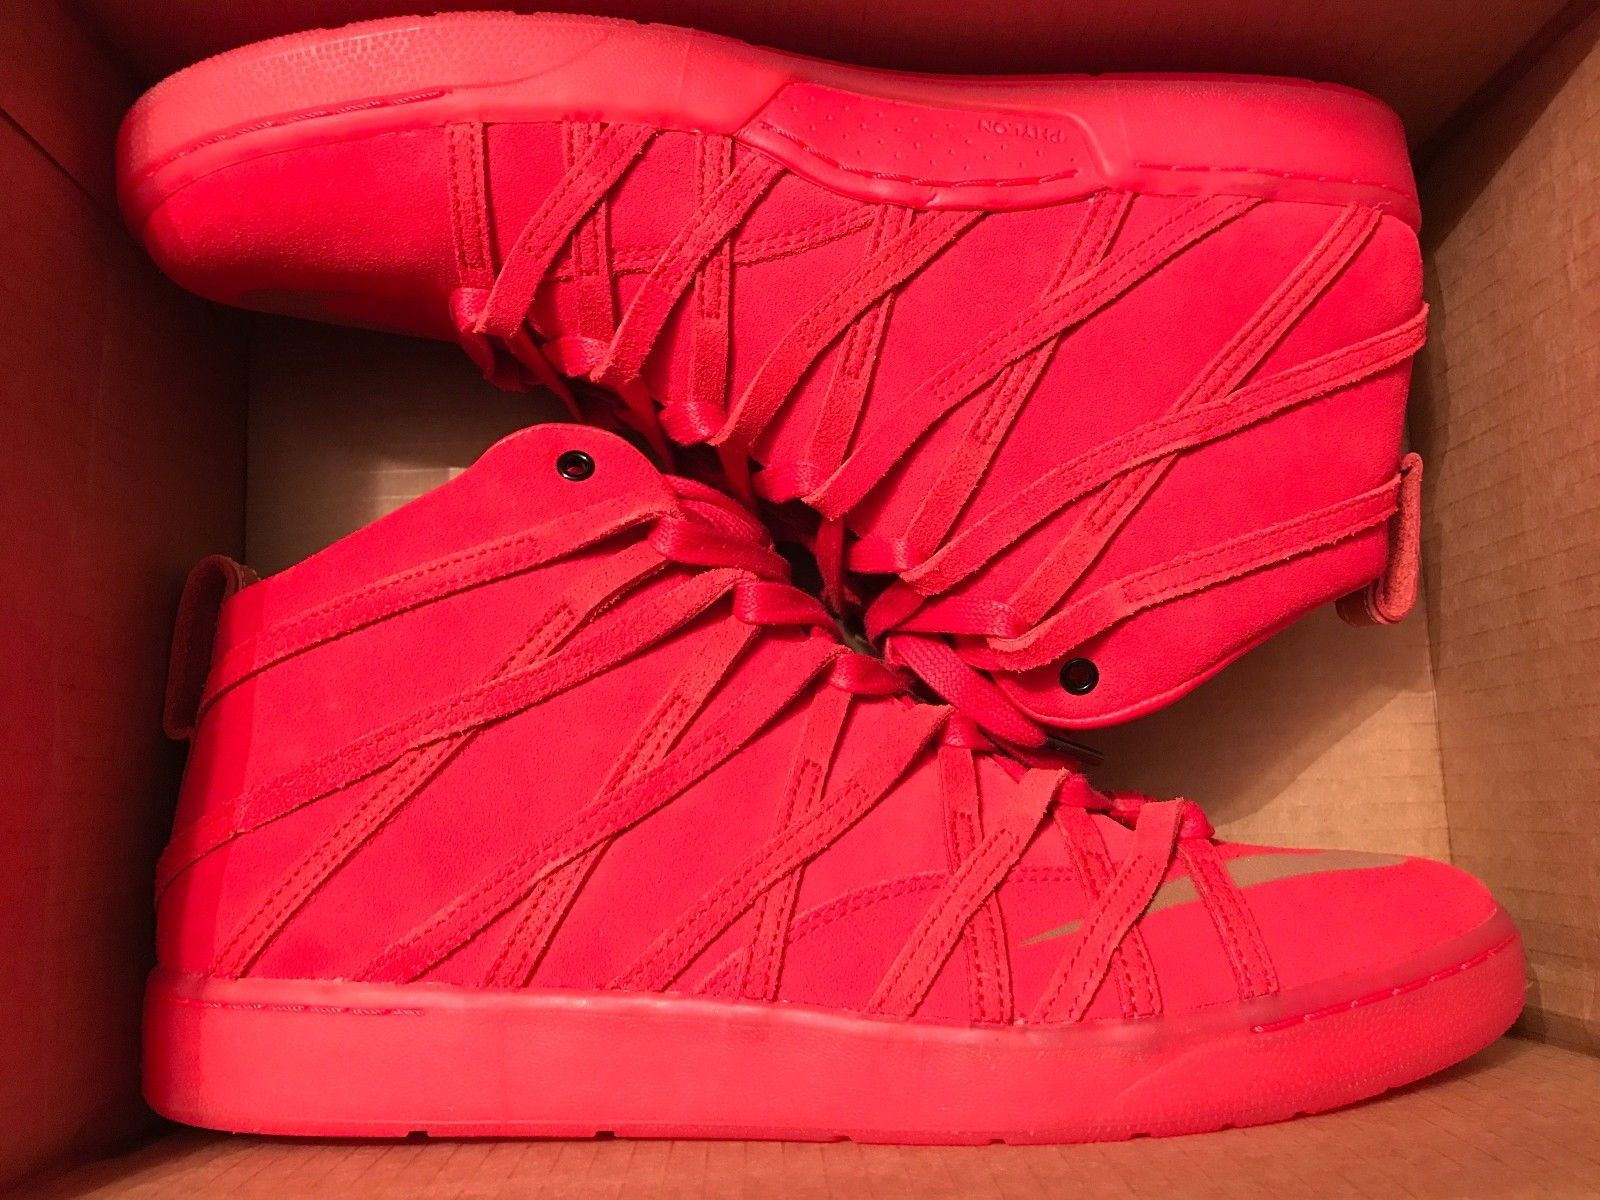 9966bf1532d Image of Nike KD VII 7 lifestyle nsw qs size 13 red suede shoes sneakers  Kevin